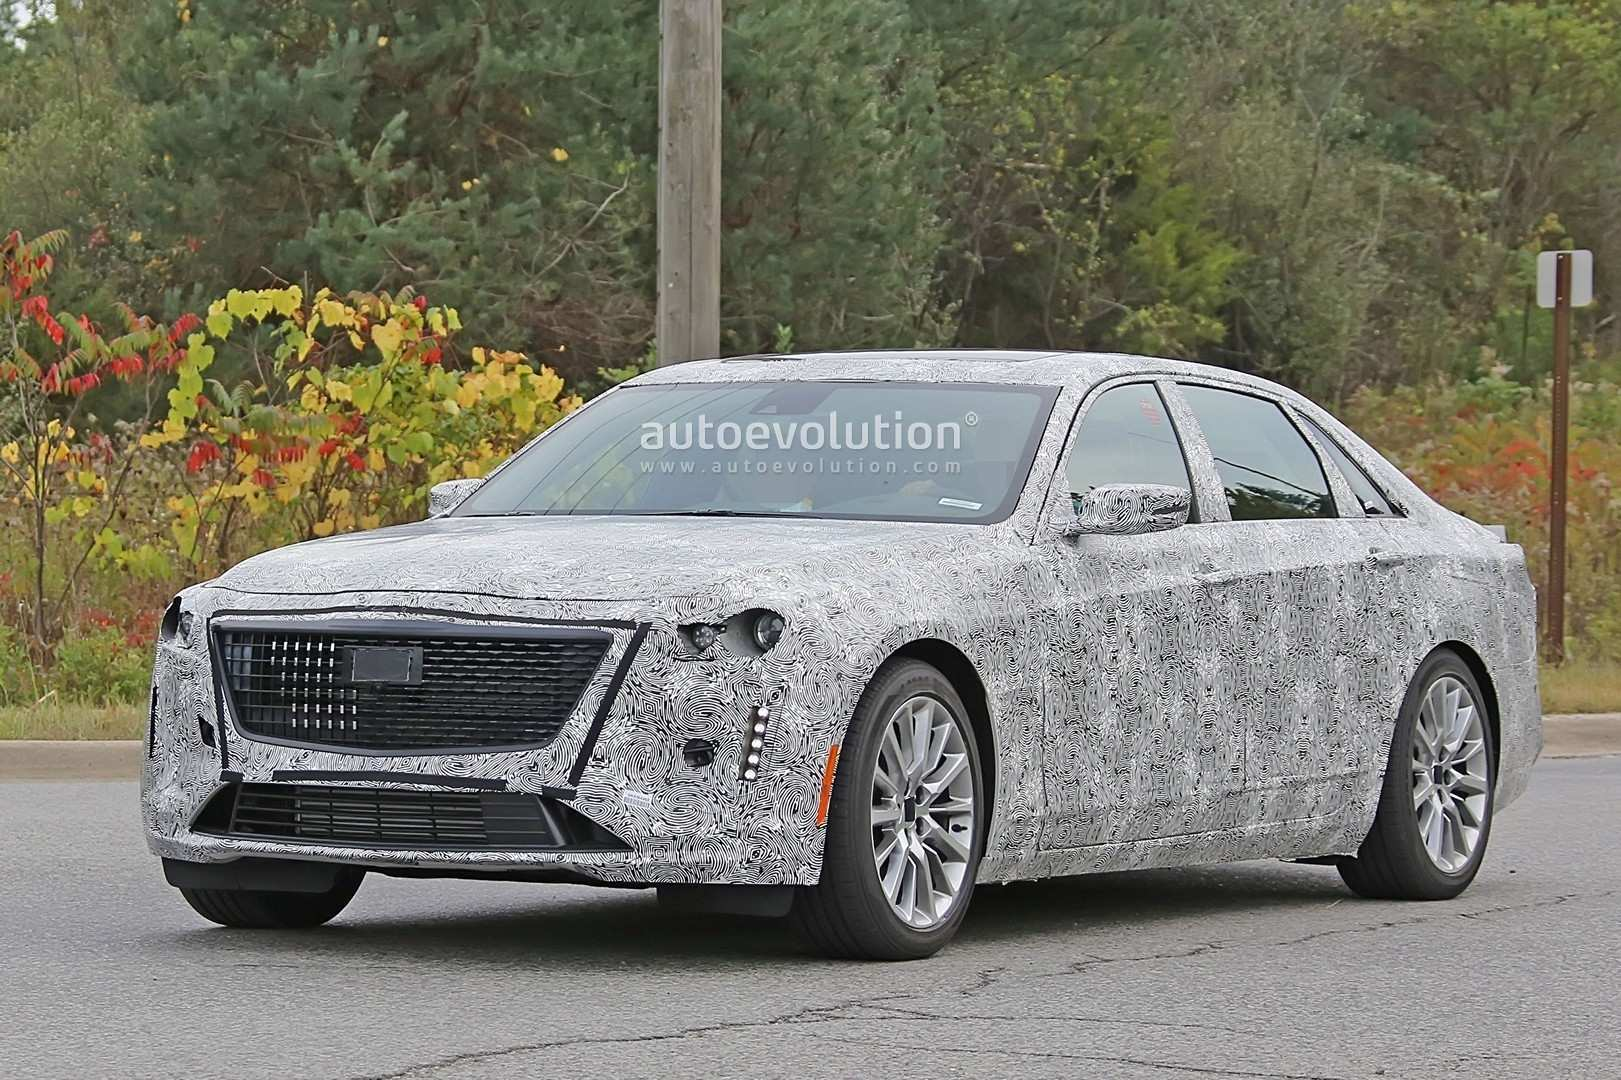 90 Great Cadillac Flagship 2019 Release Date Engine with Cadillac Flagship 2019 Release Date